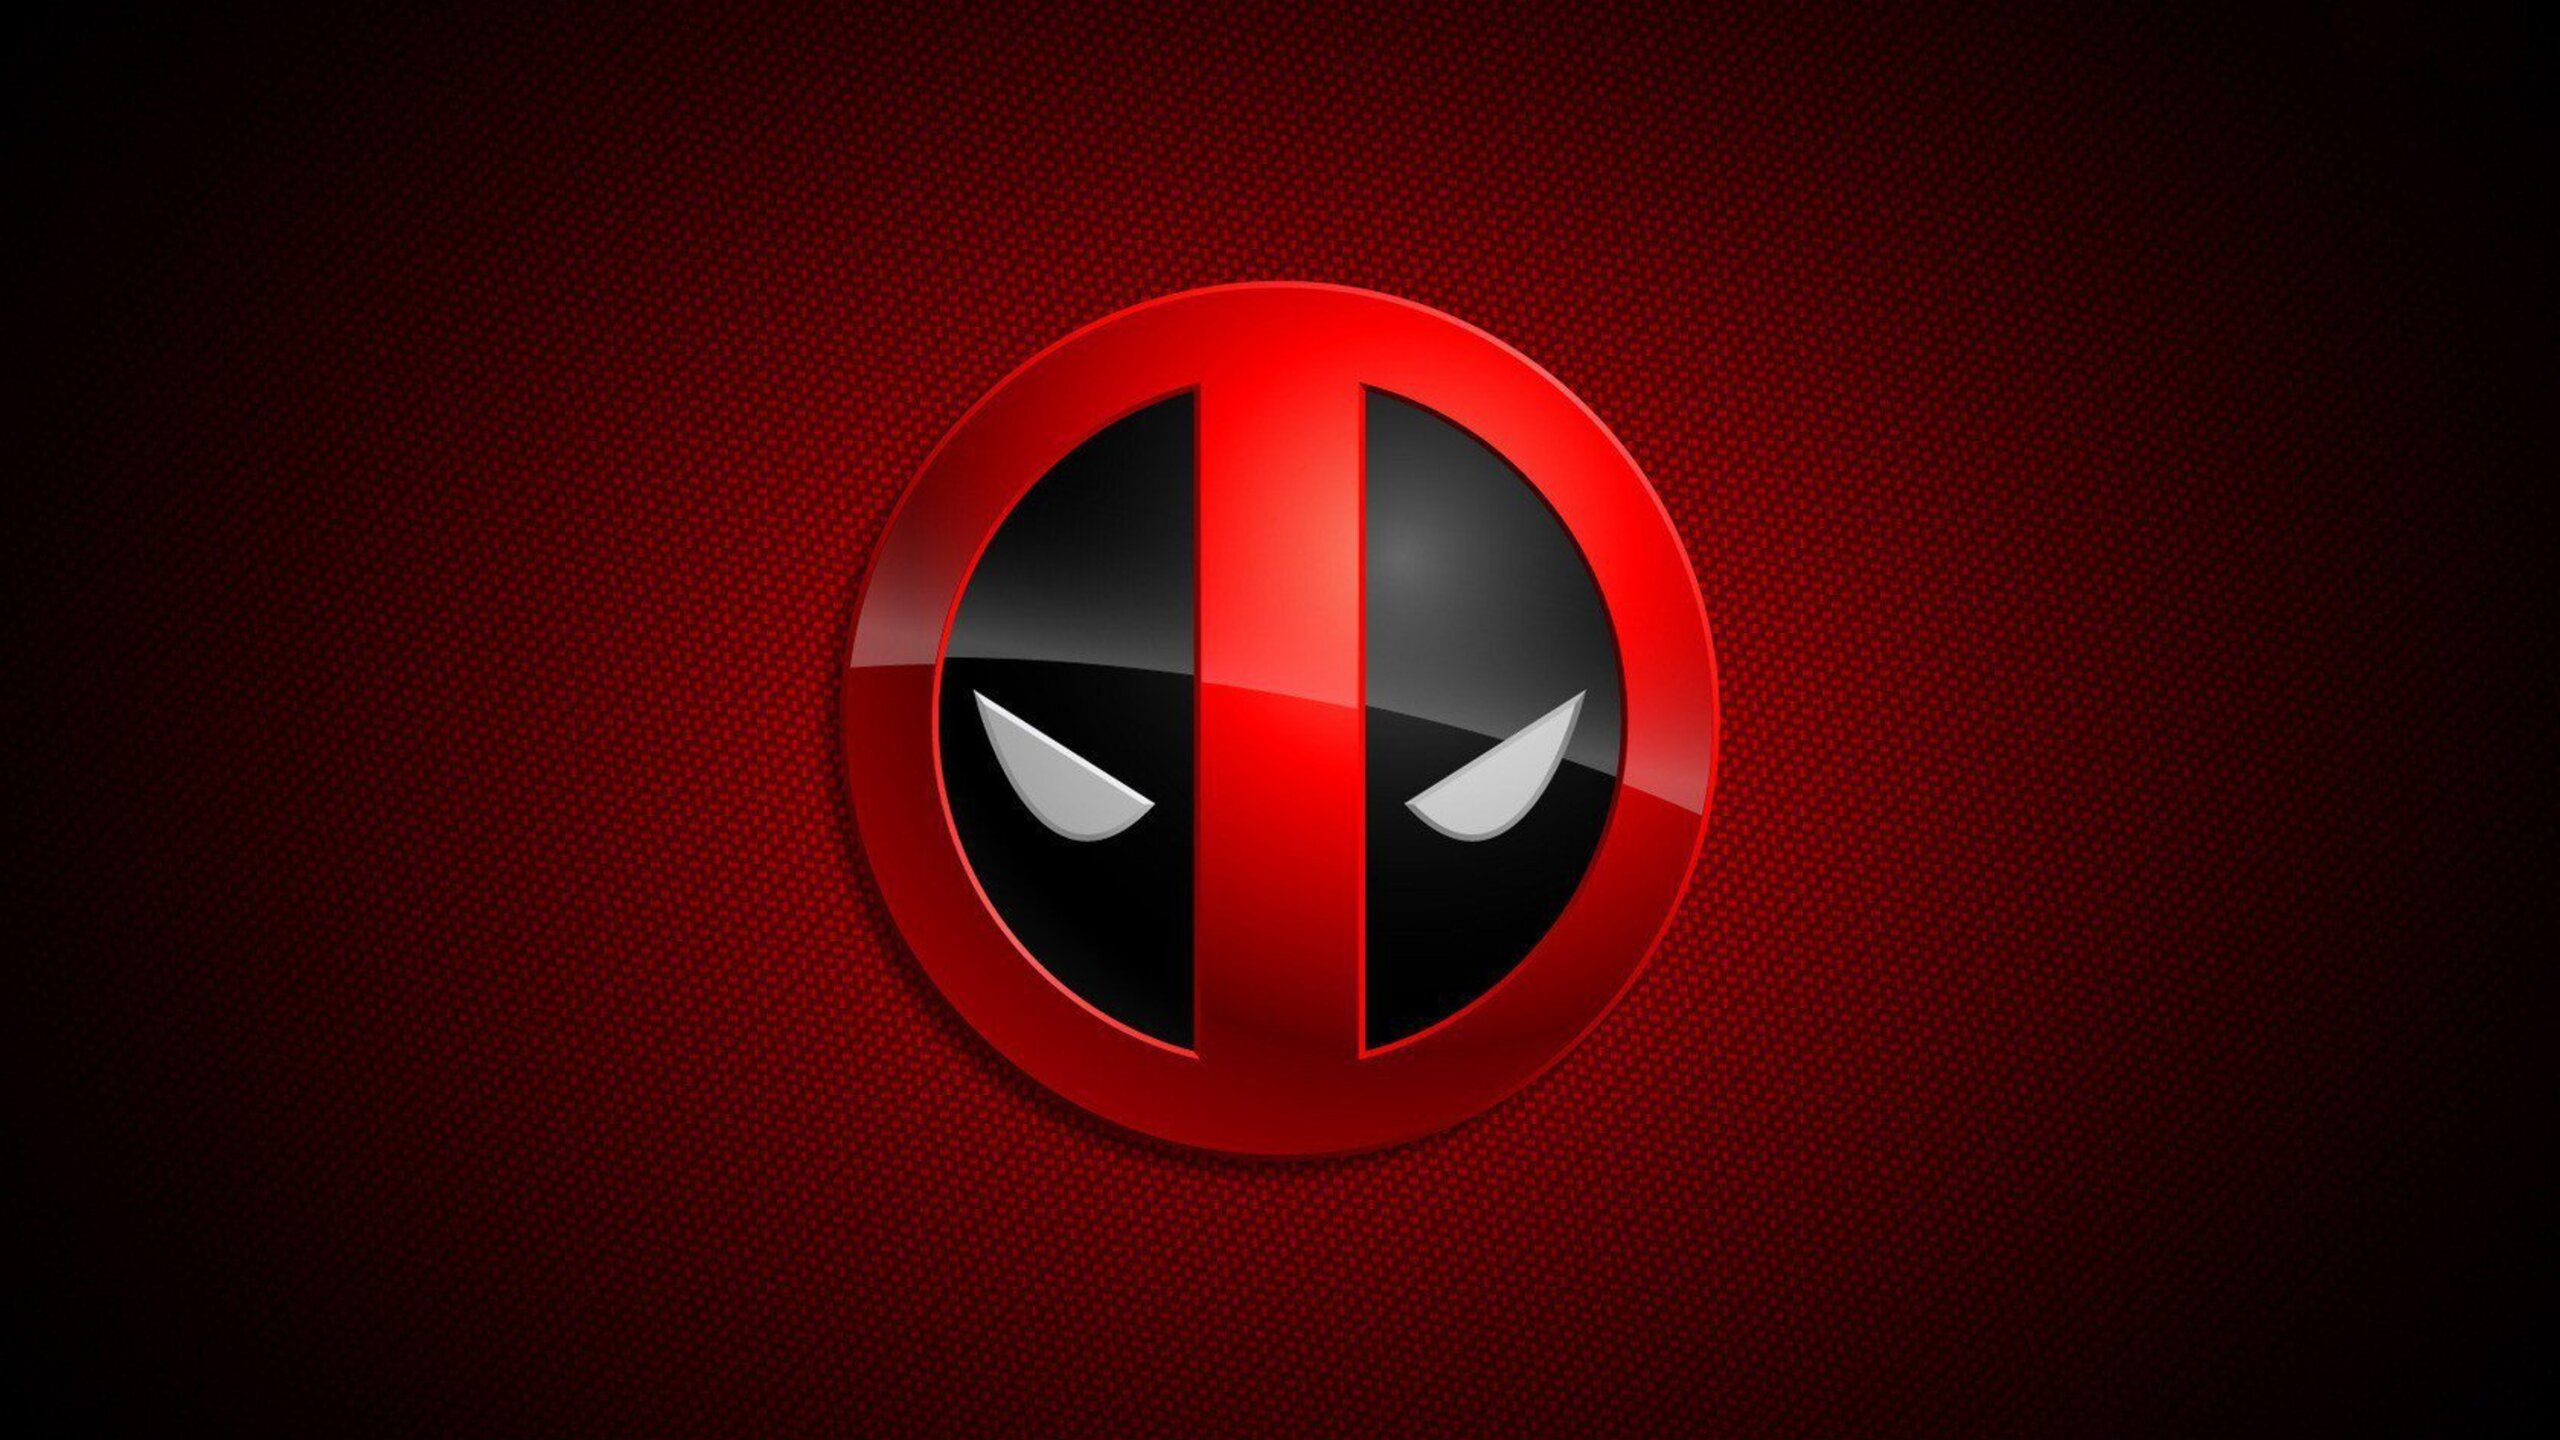 2560x1440 Deadpool Game Logo 1440p Resolution Hd 4k Wallpapers